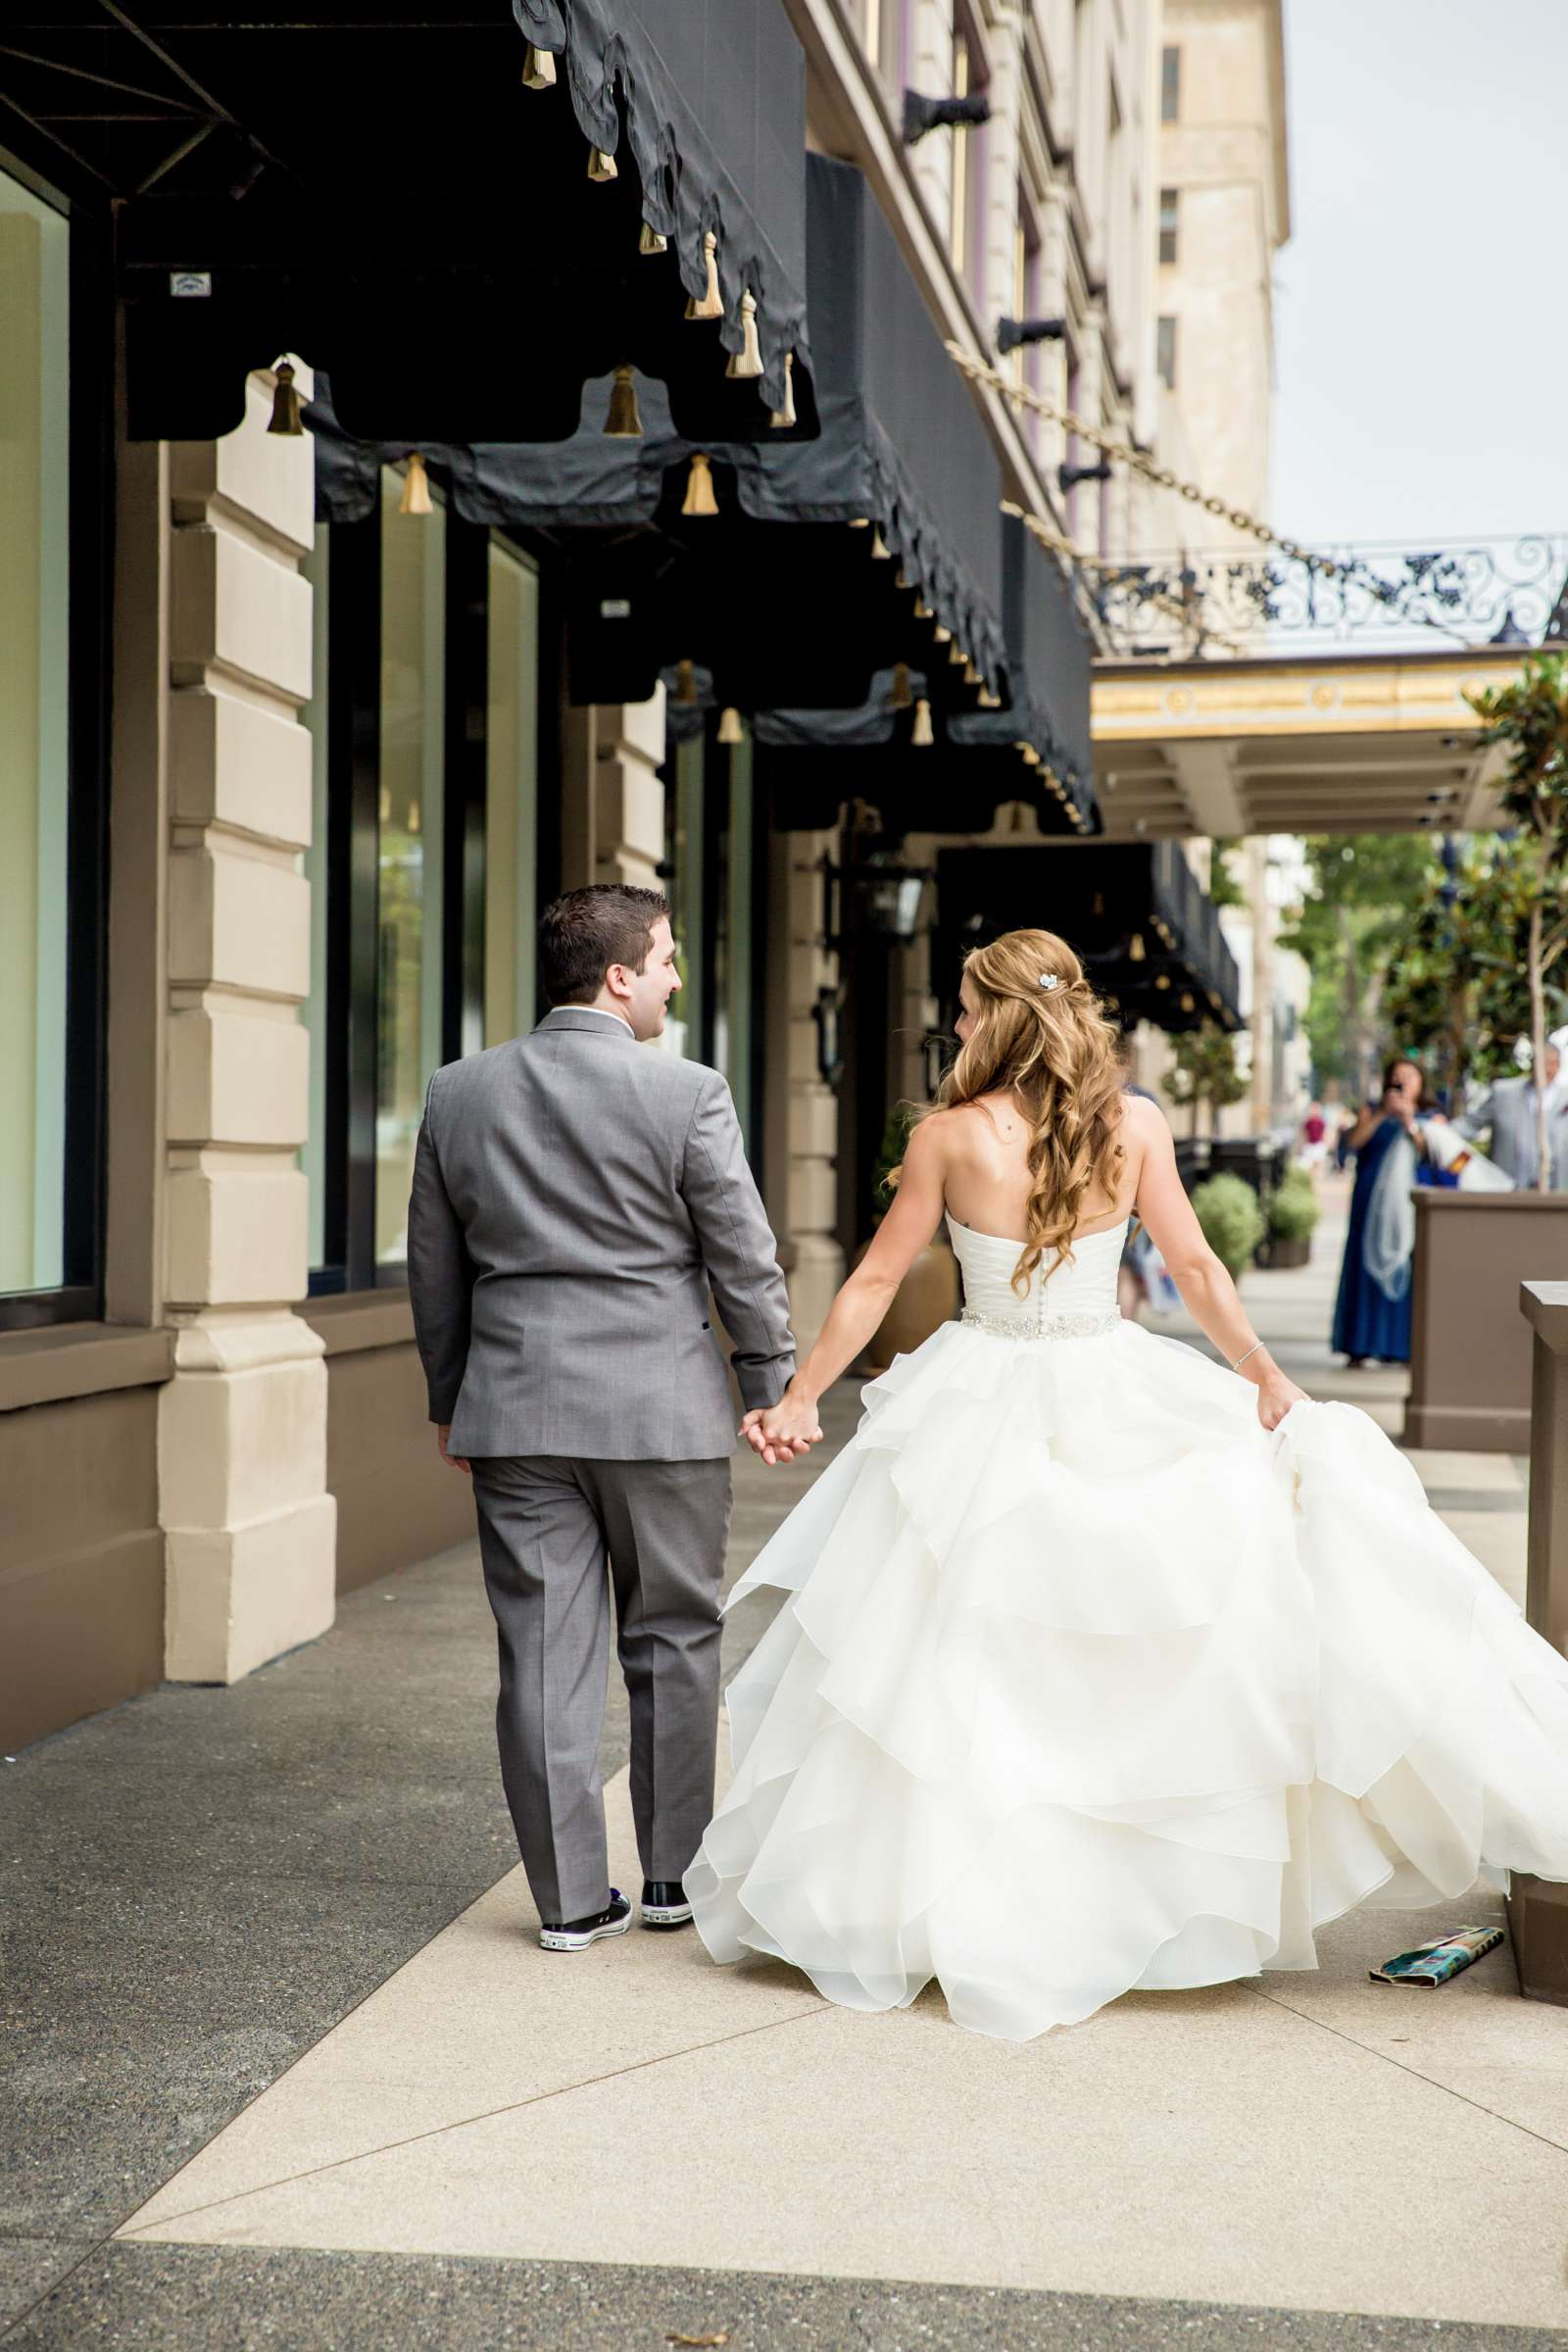 The Prado Wedding coordinated by Victoria Weddings & Events, Melissa and Andrew Wedding Photo #60 by True Photography